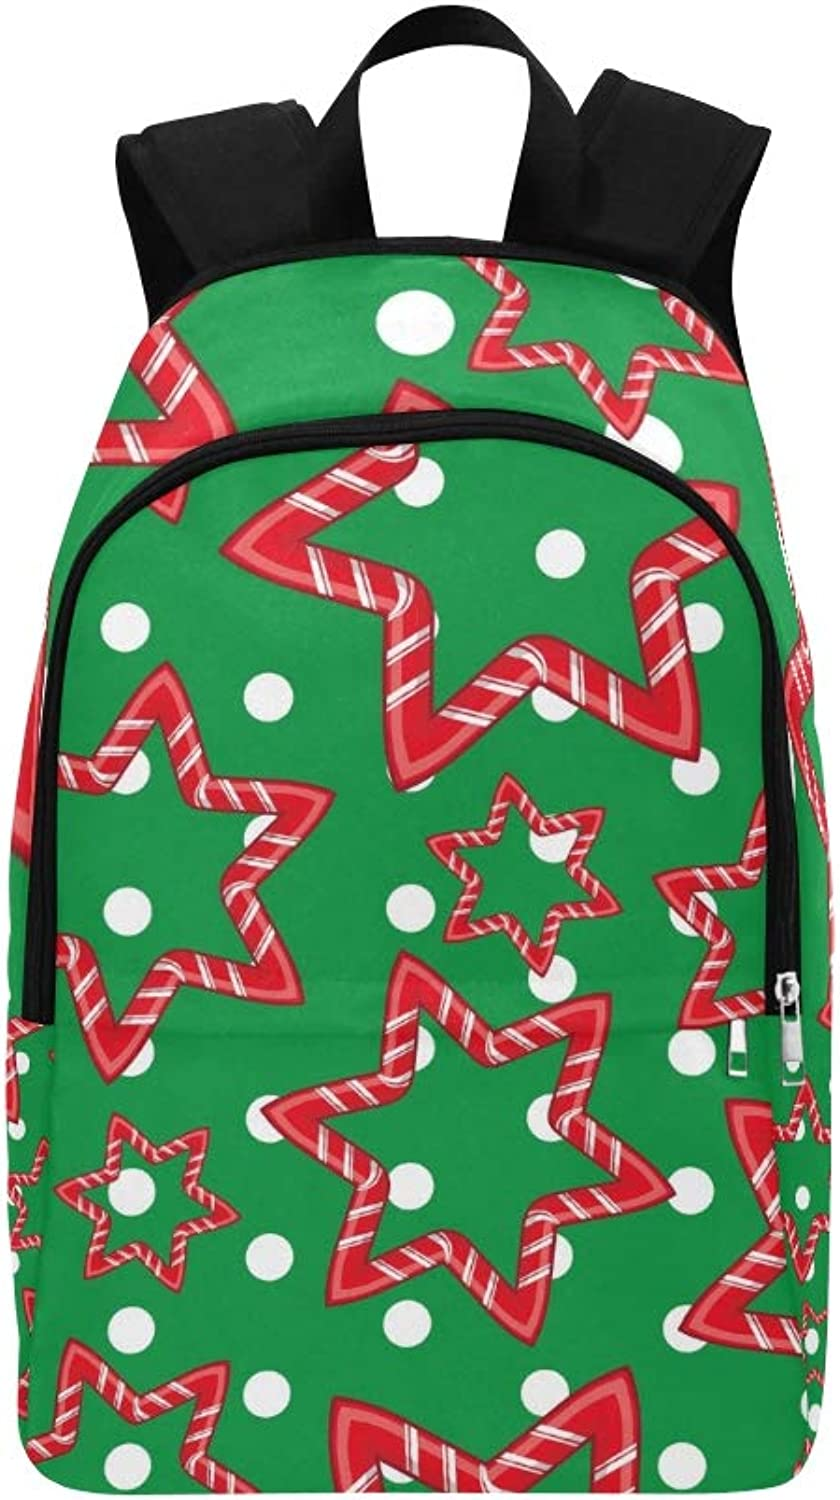 Candy Cane Christmas Casual Daypack Travel Bag College School Backpack for Mens and Women